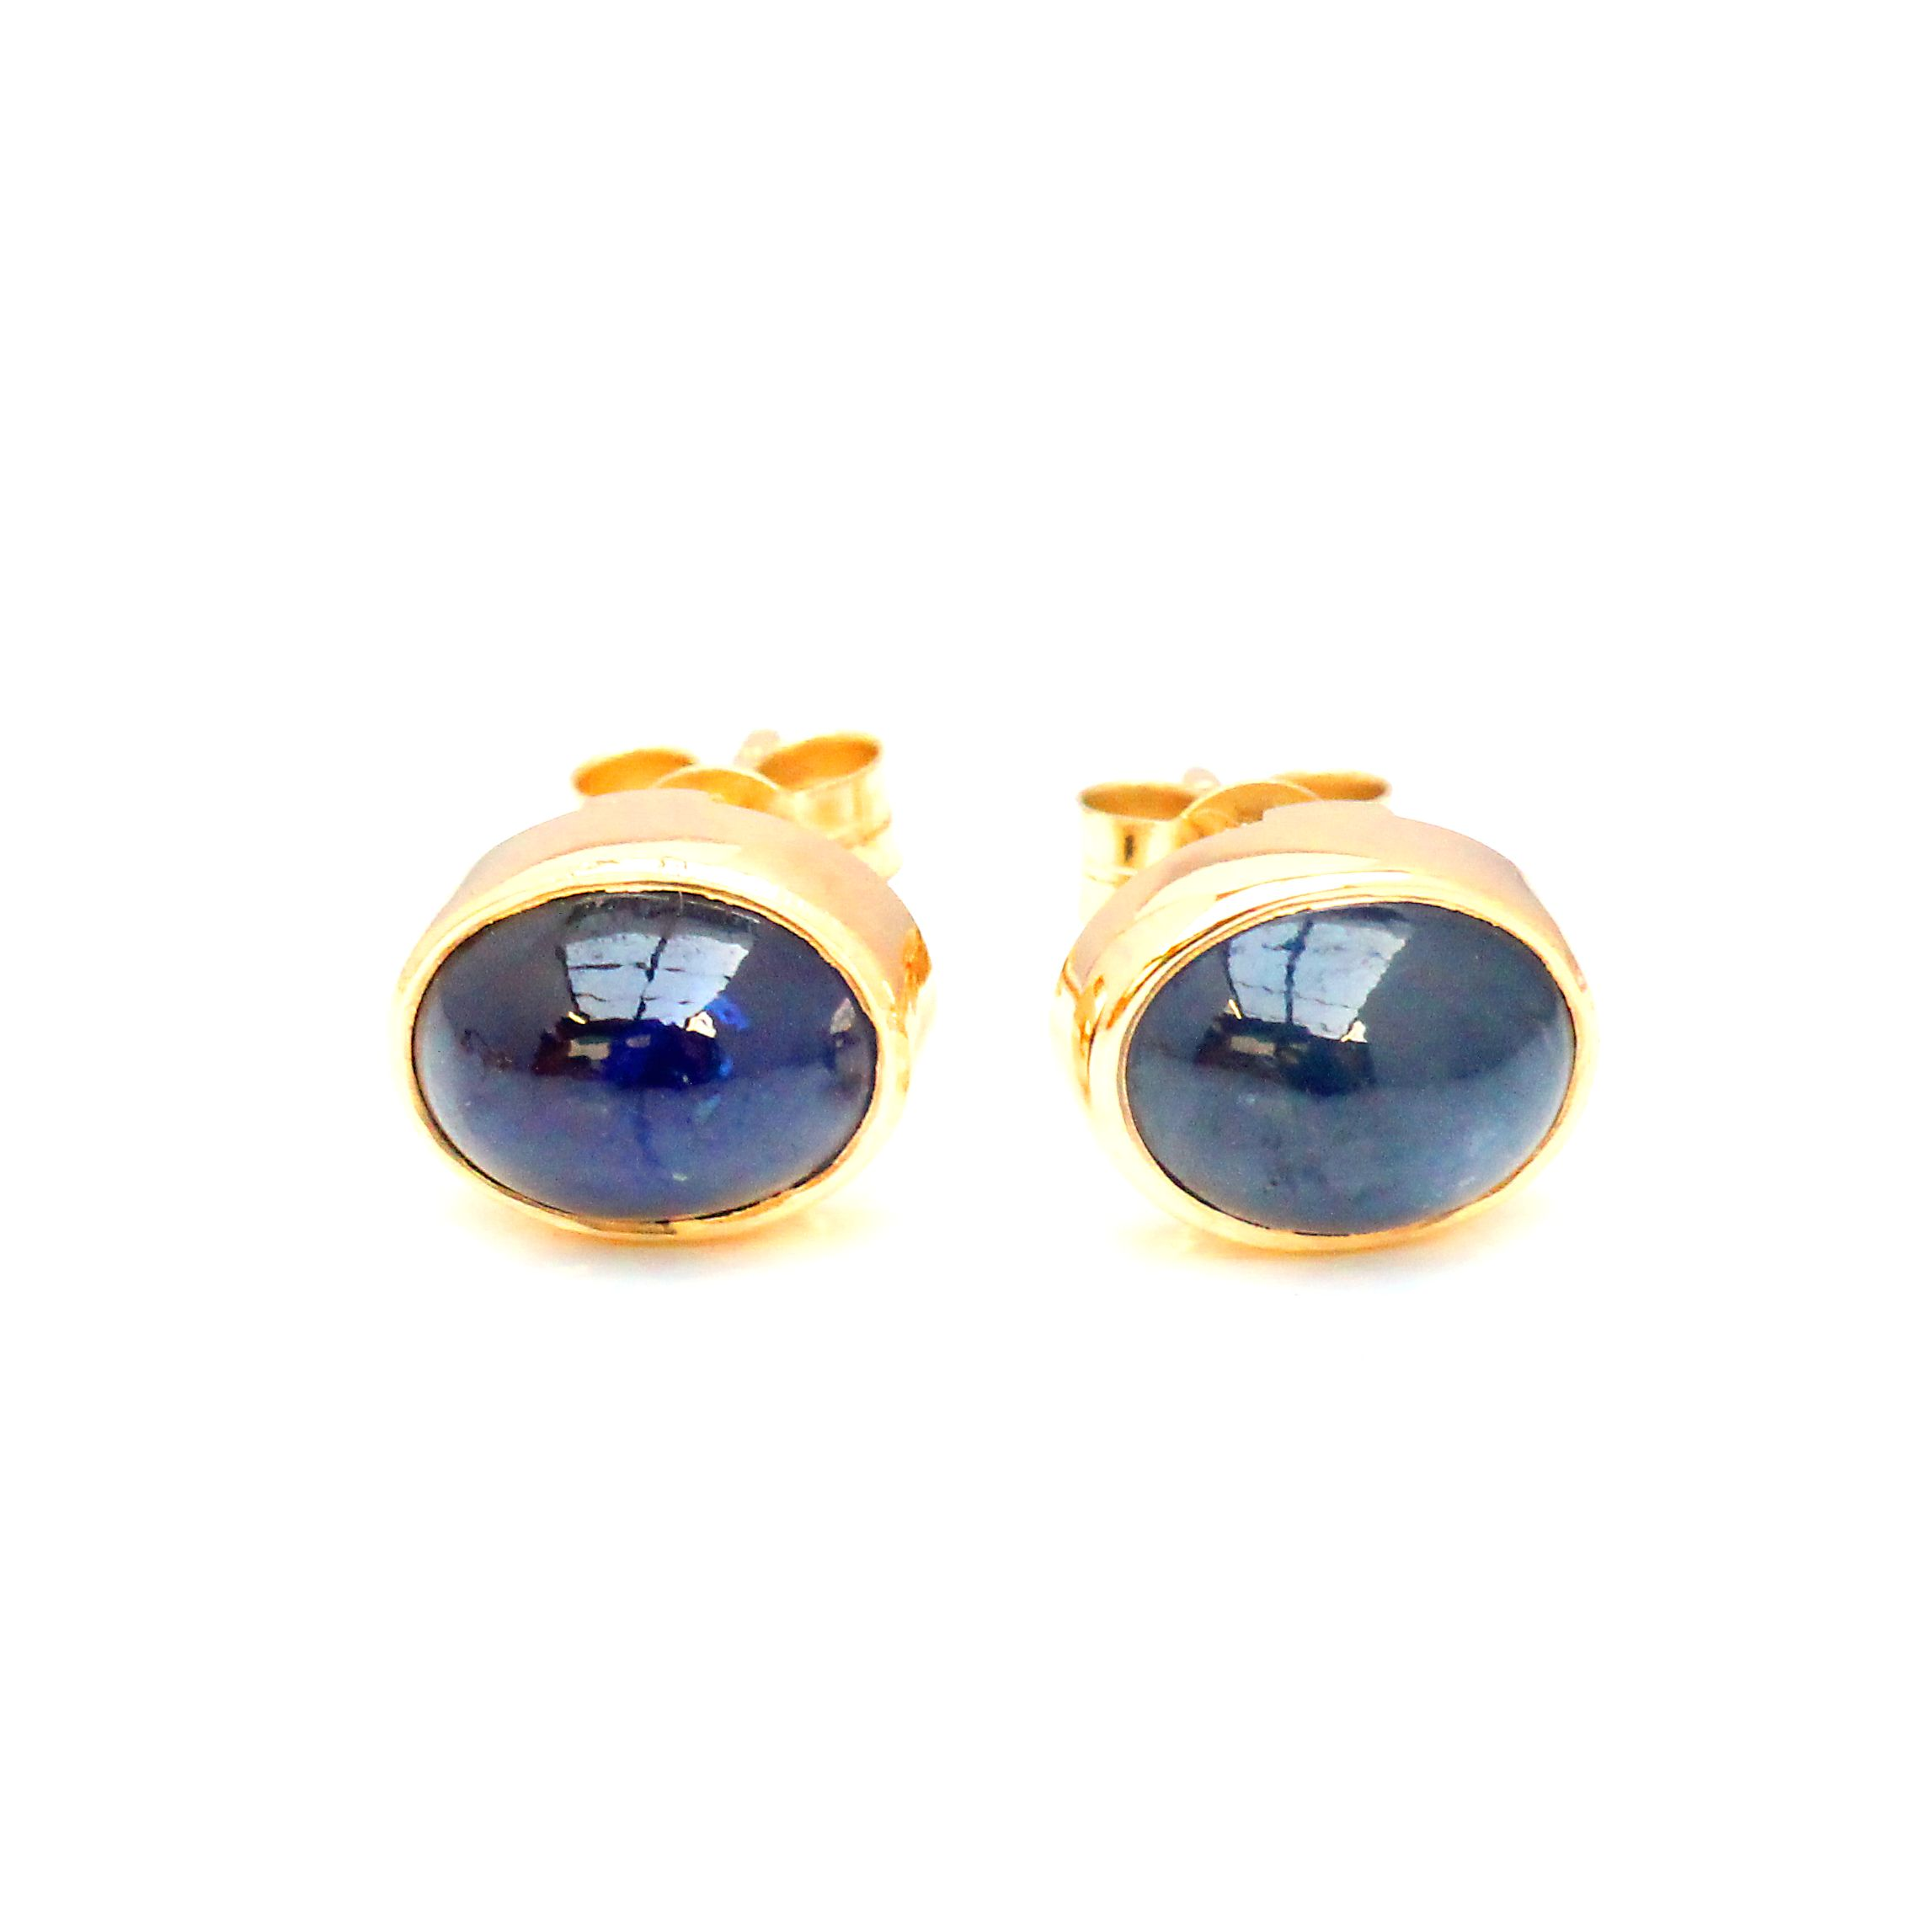 jewelry earrings stud blue gold color cttw collections sapphire jewels vir